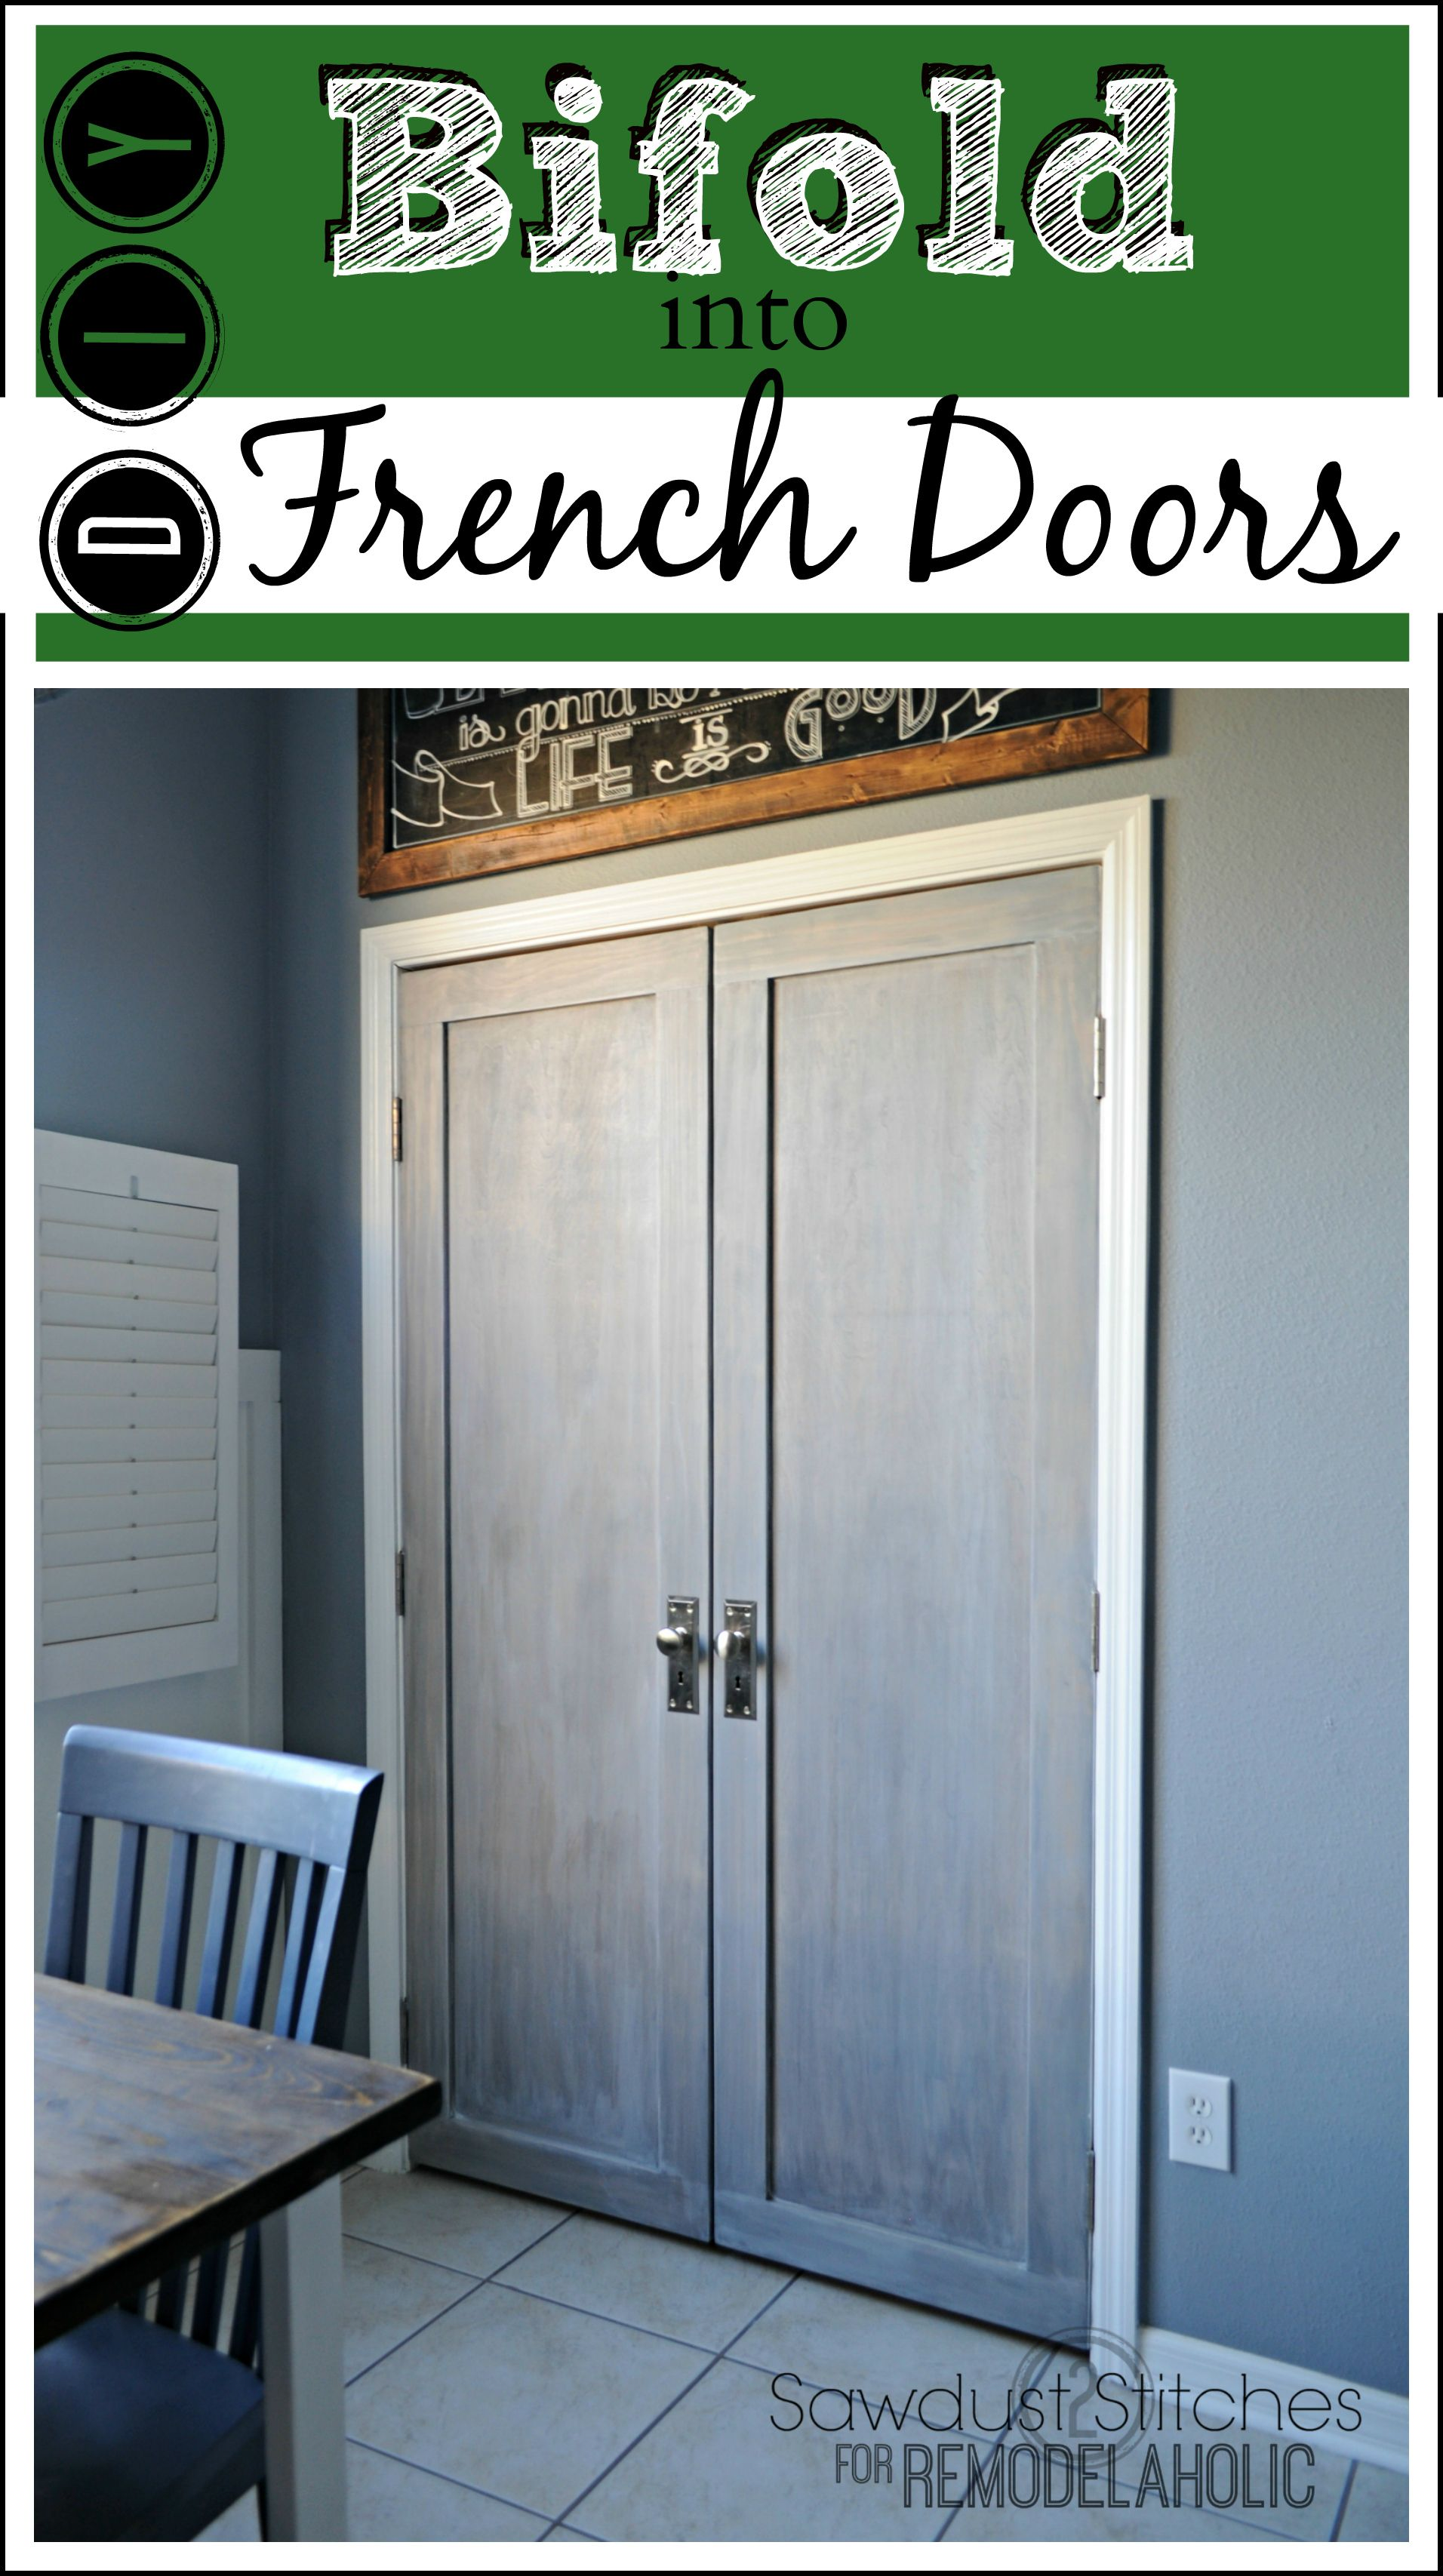 Builder Basic Bifold Door Makeover Into Stylish French Doors Tutorial From Sawdust2stitches On Remodela Bifold Doors Makeover Door Makeover Diy Bifold Doors